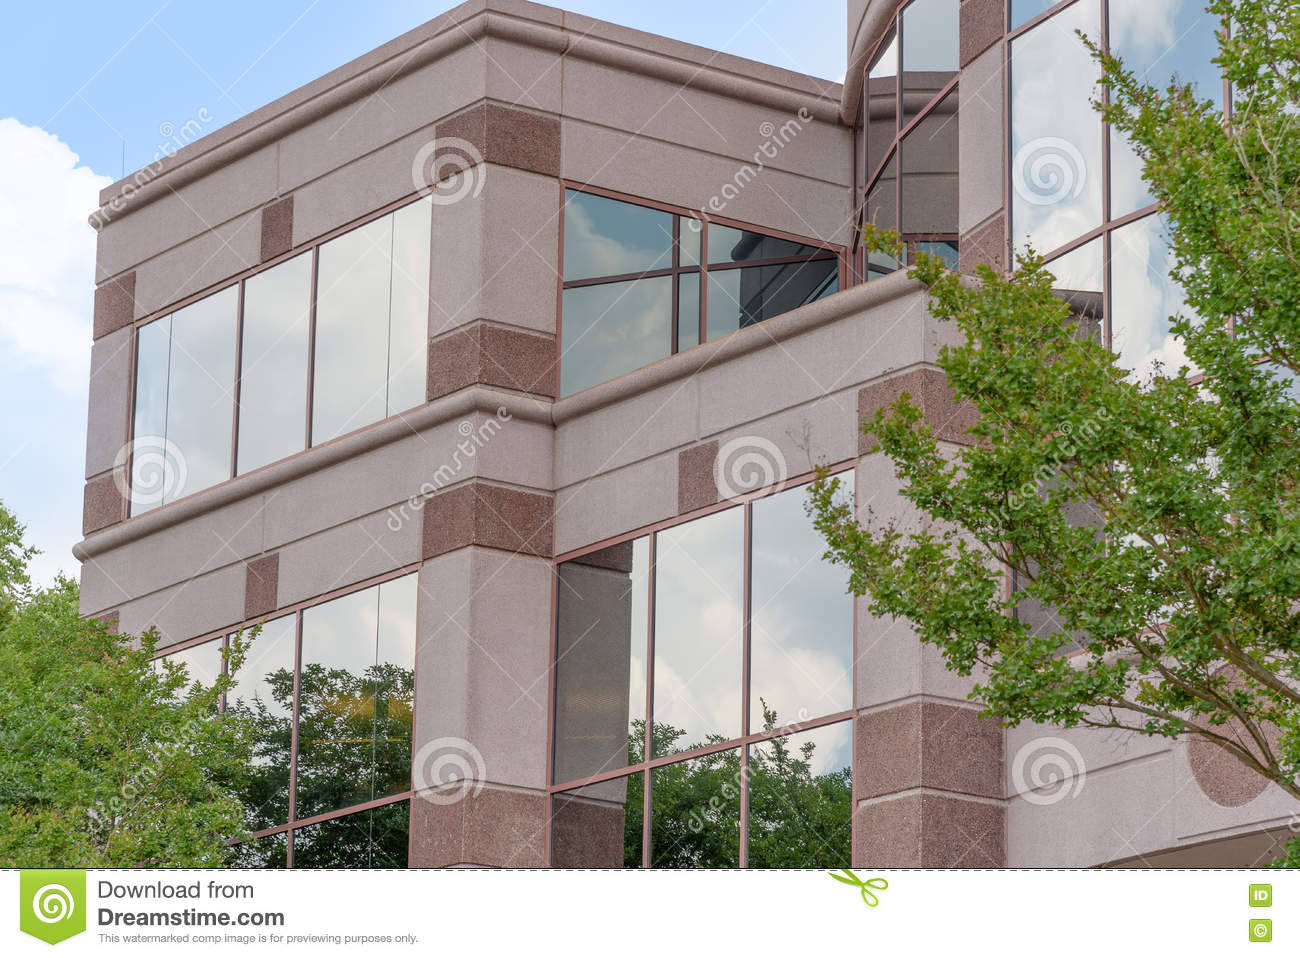 Download Clouds And Trees Reflection On Corporate Building Stock Photo - Image of windows, reflection: 72455988